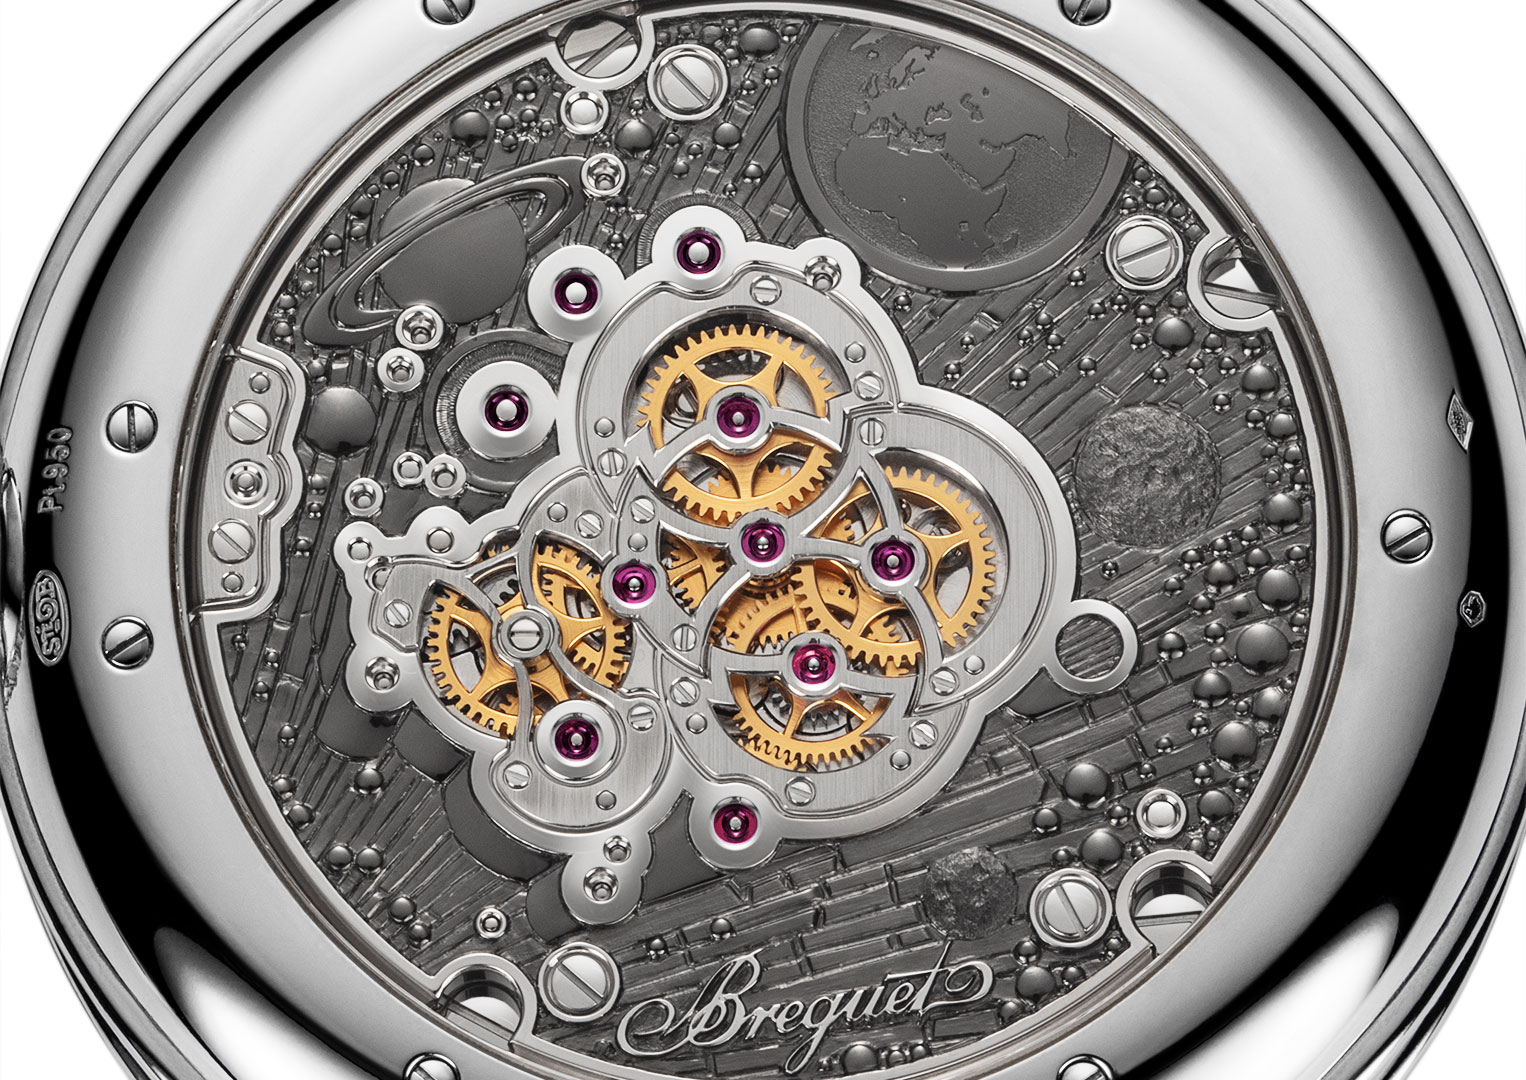 Breguet has been owned by the Swatch Group since 1999